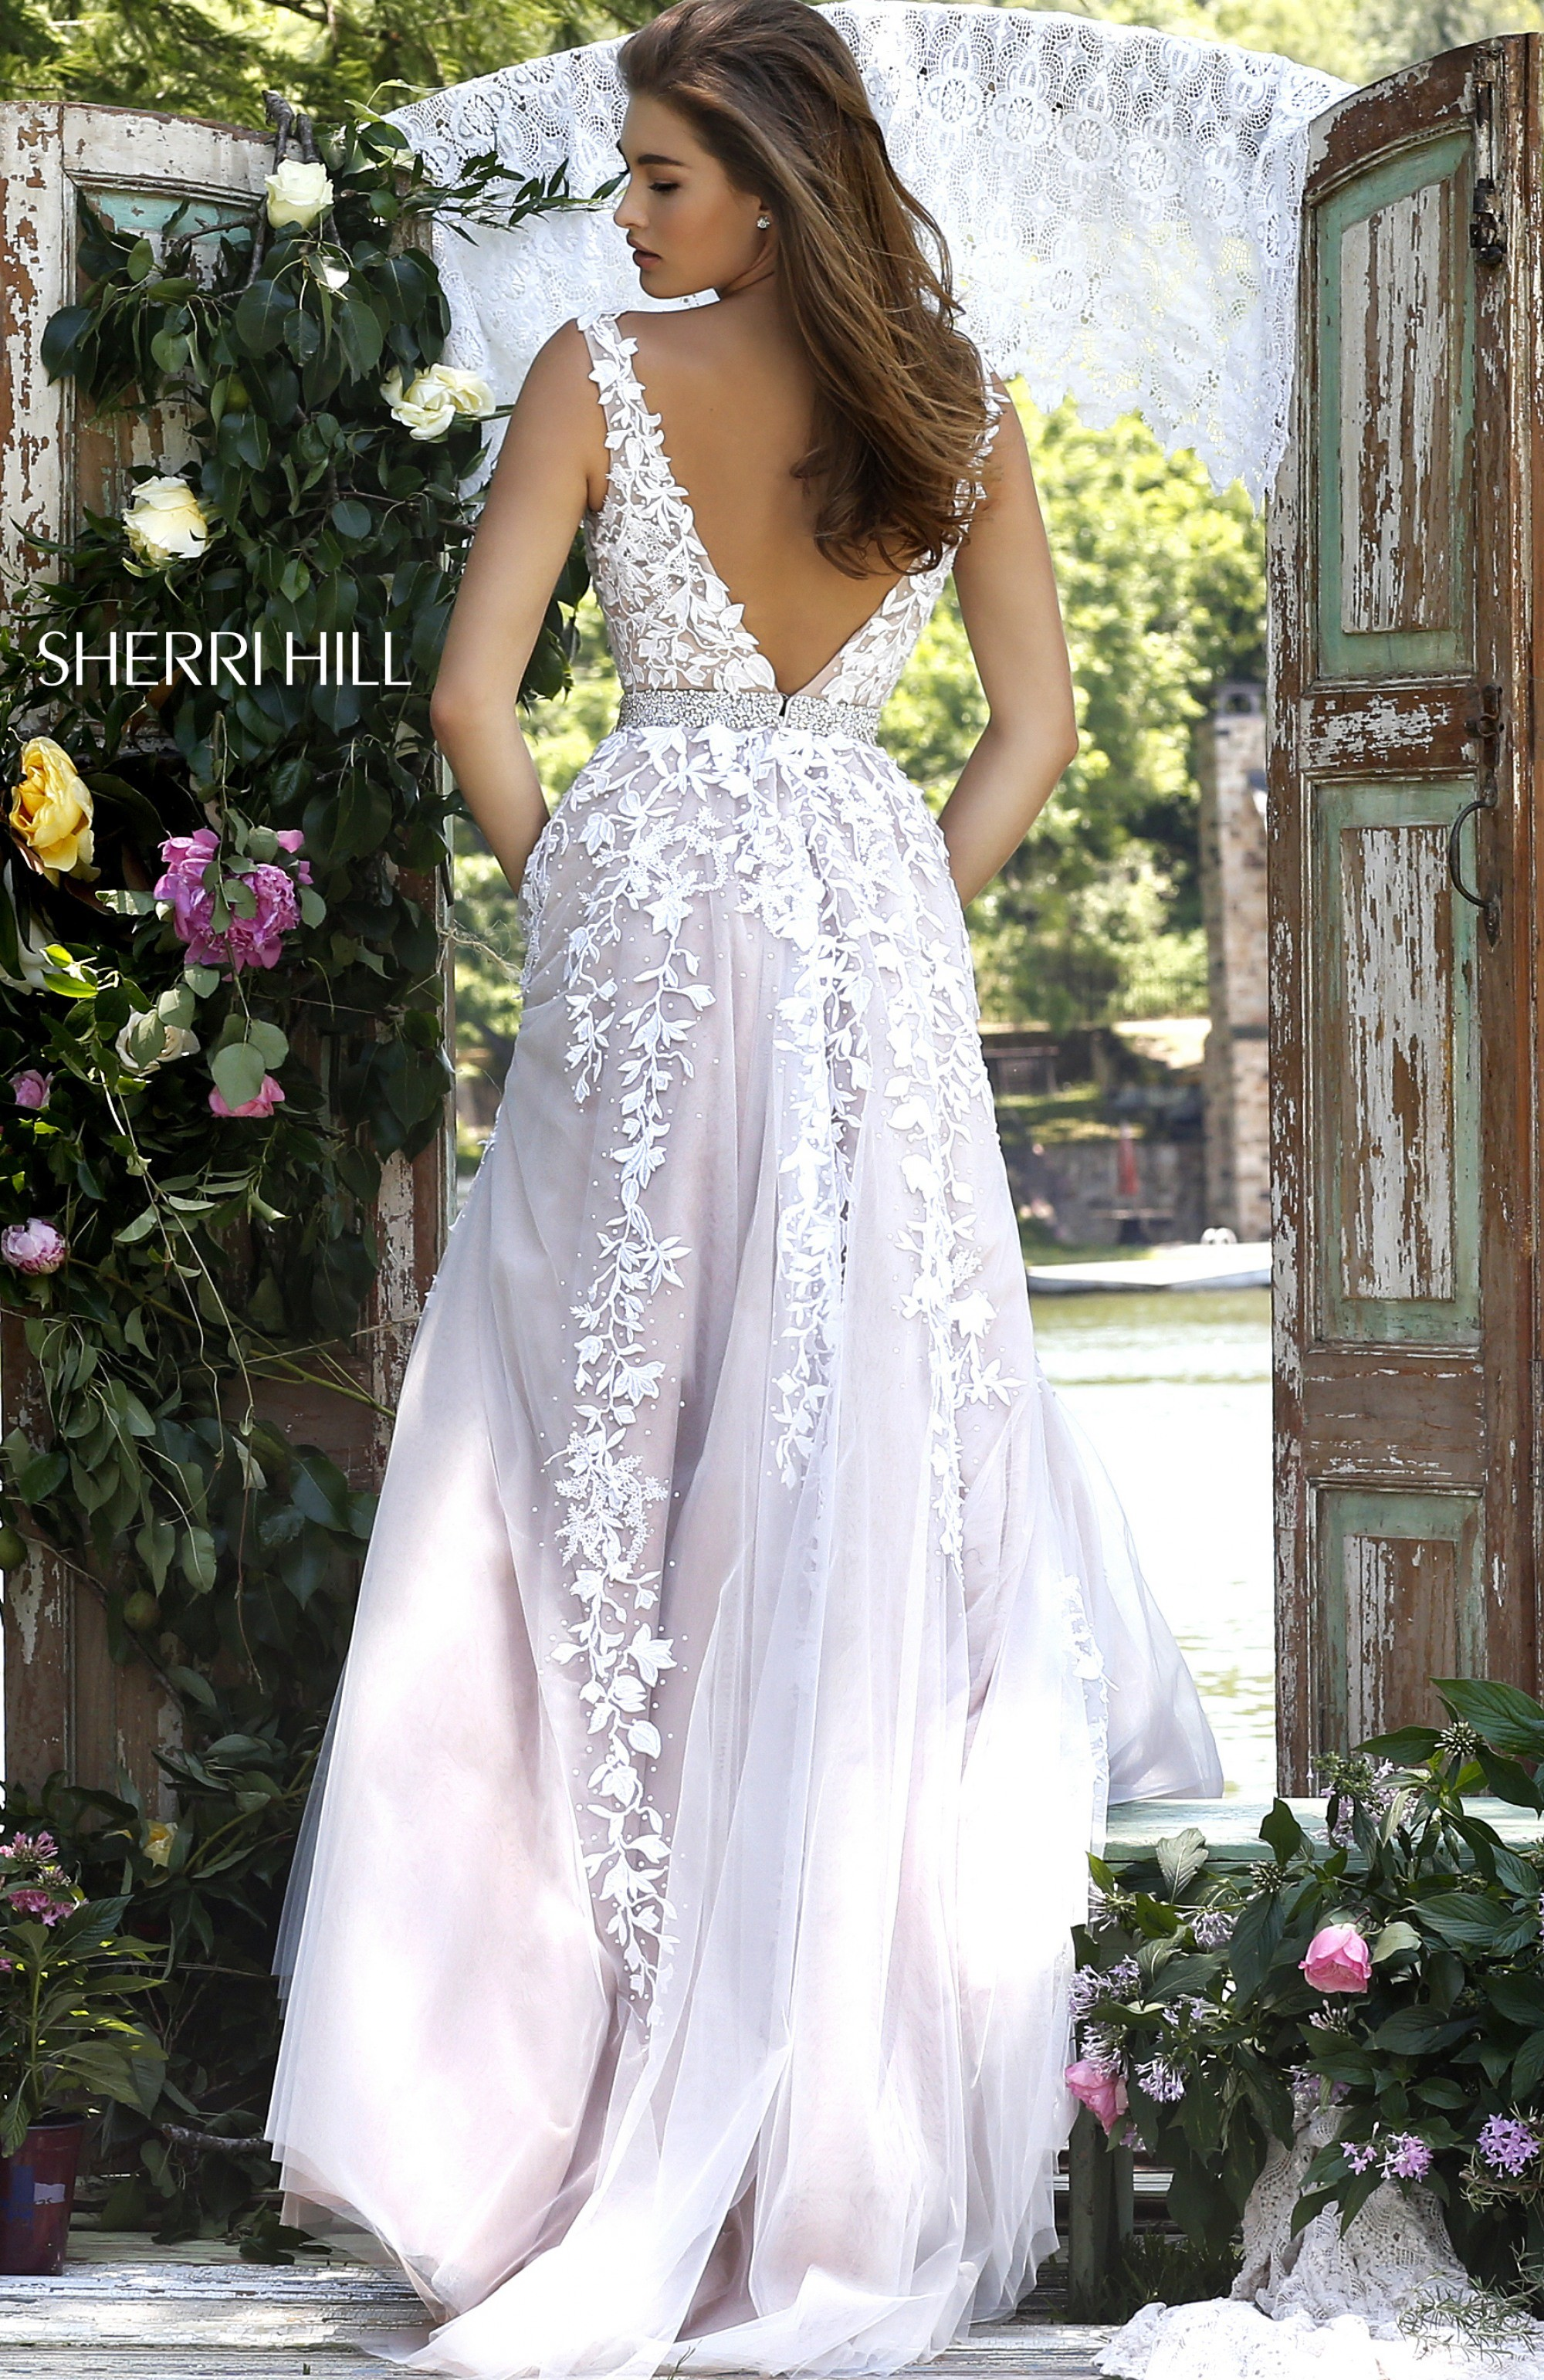 Sherri Hill 11335 Prom Dress | MadameBridal.com